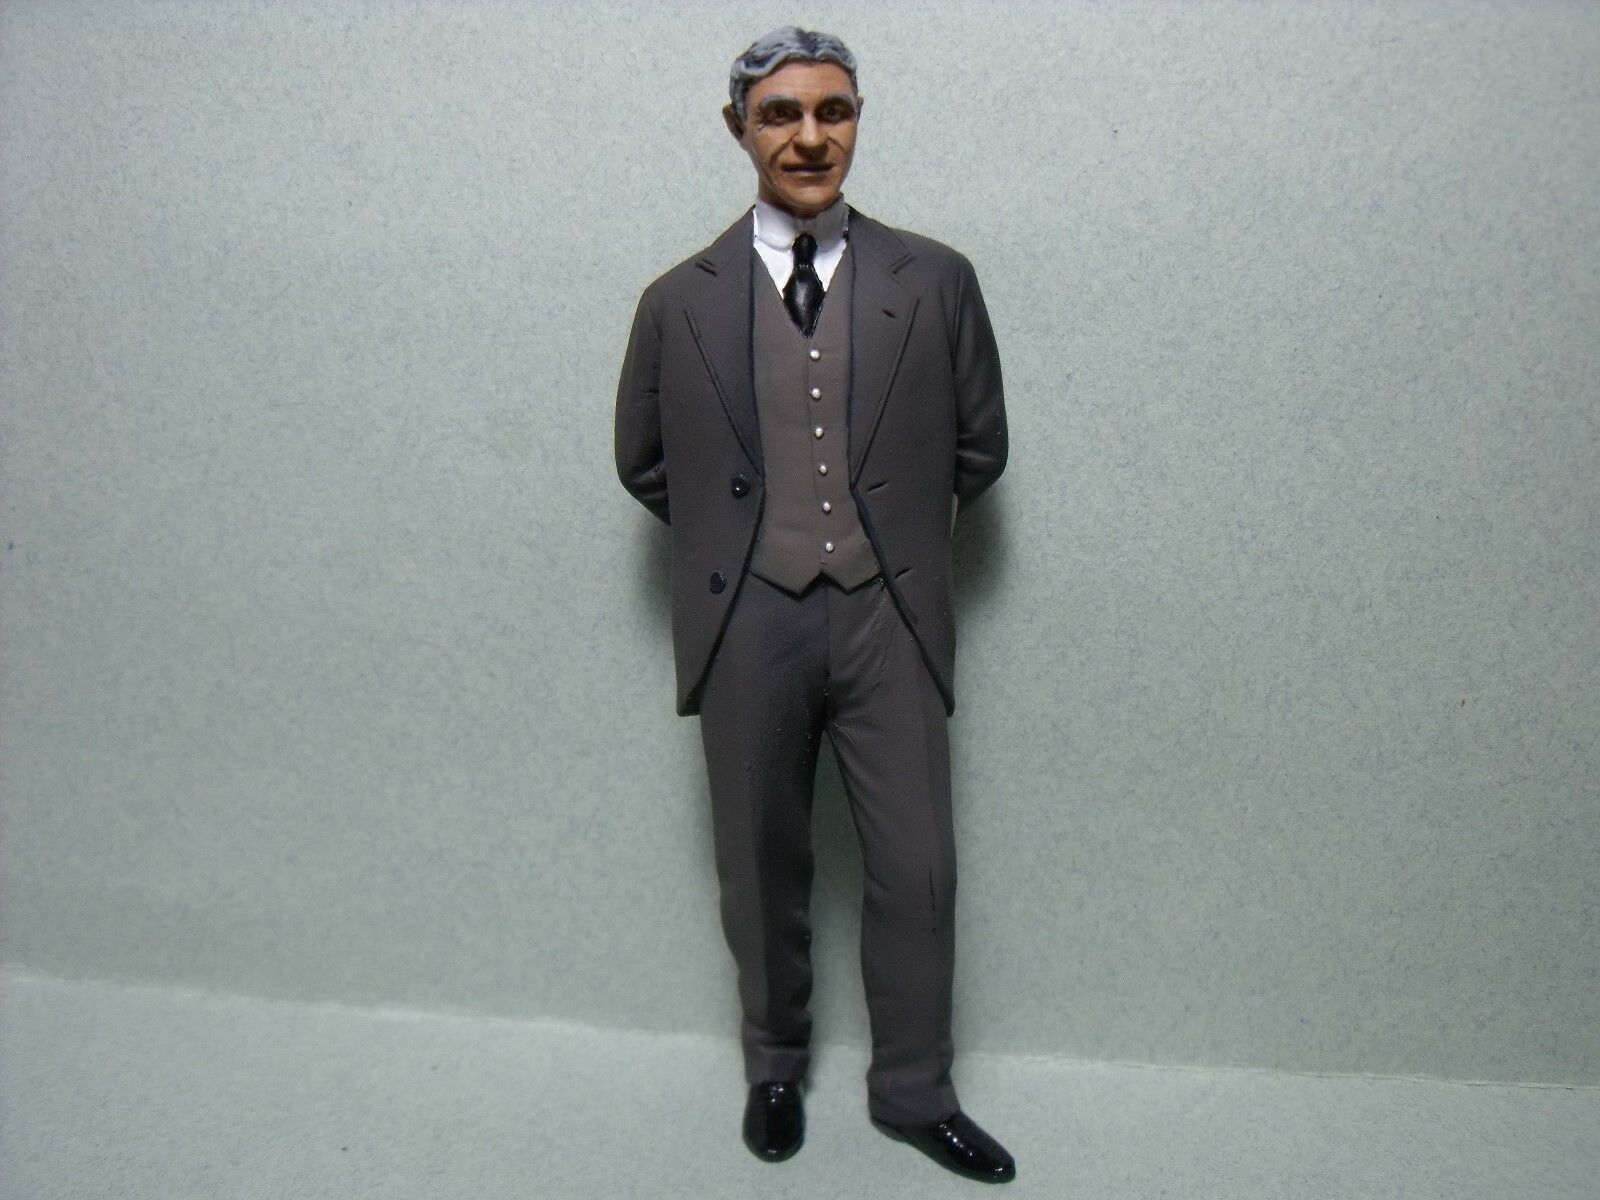 1 18  FIGURE  HENRY  FORD   PAINTED  BY  VROOM  FOR  CMC  MINICHAMPS  1 18